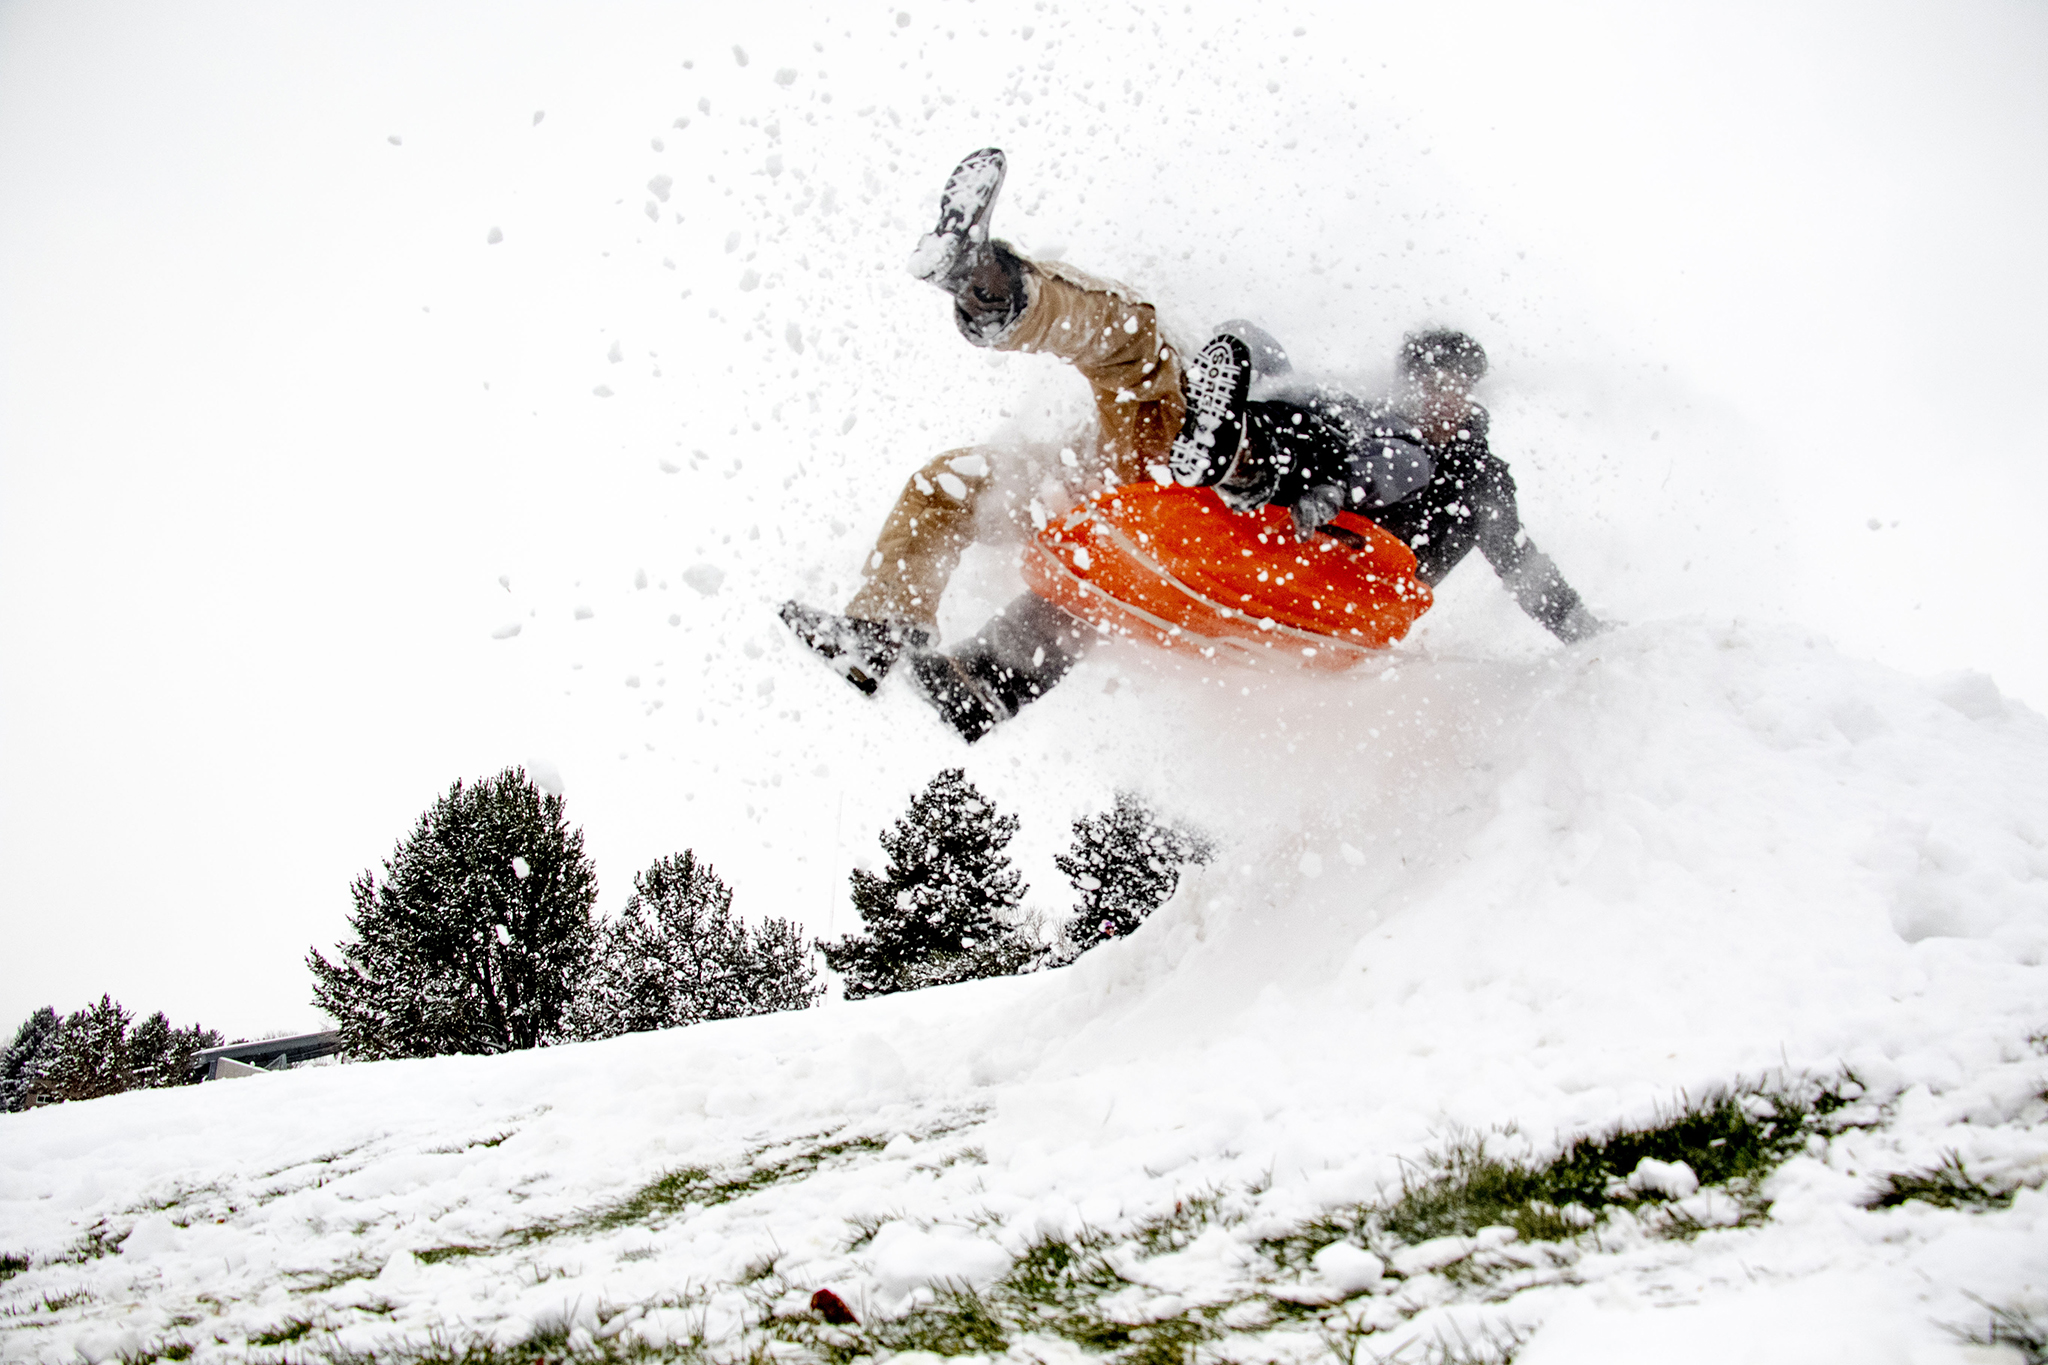 Cruz Ortega and Aryel Ramos fly over a jump at Ruby Hill Park on small sled on a snow day, Oct. 29, 2019.